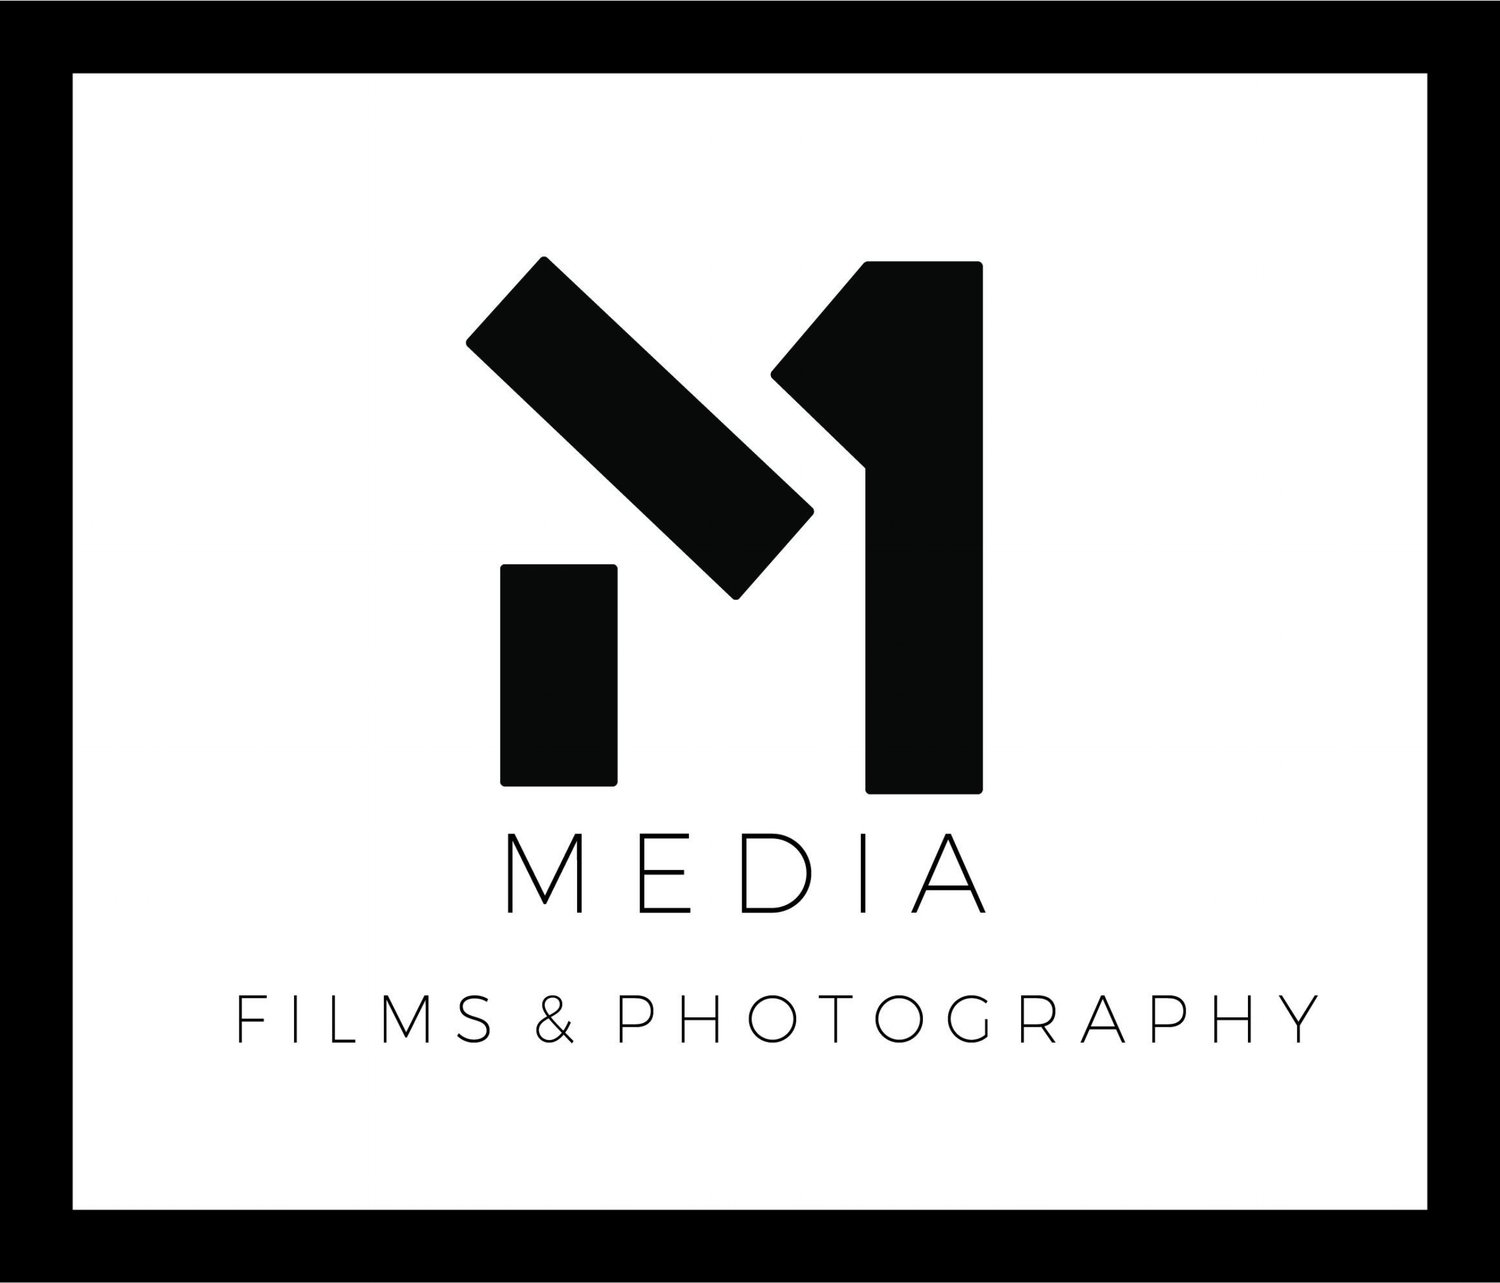 M1Media Films & Photography